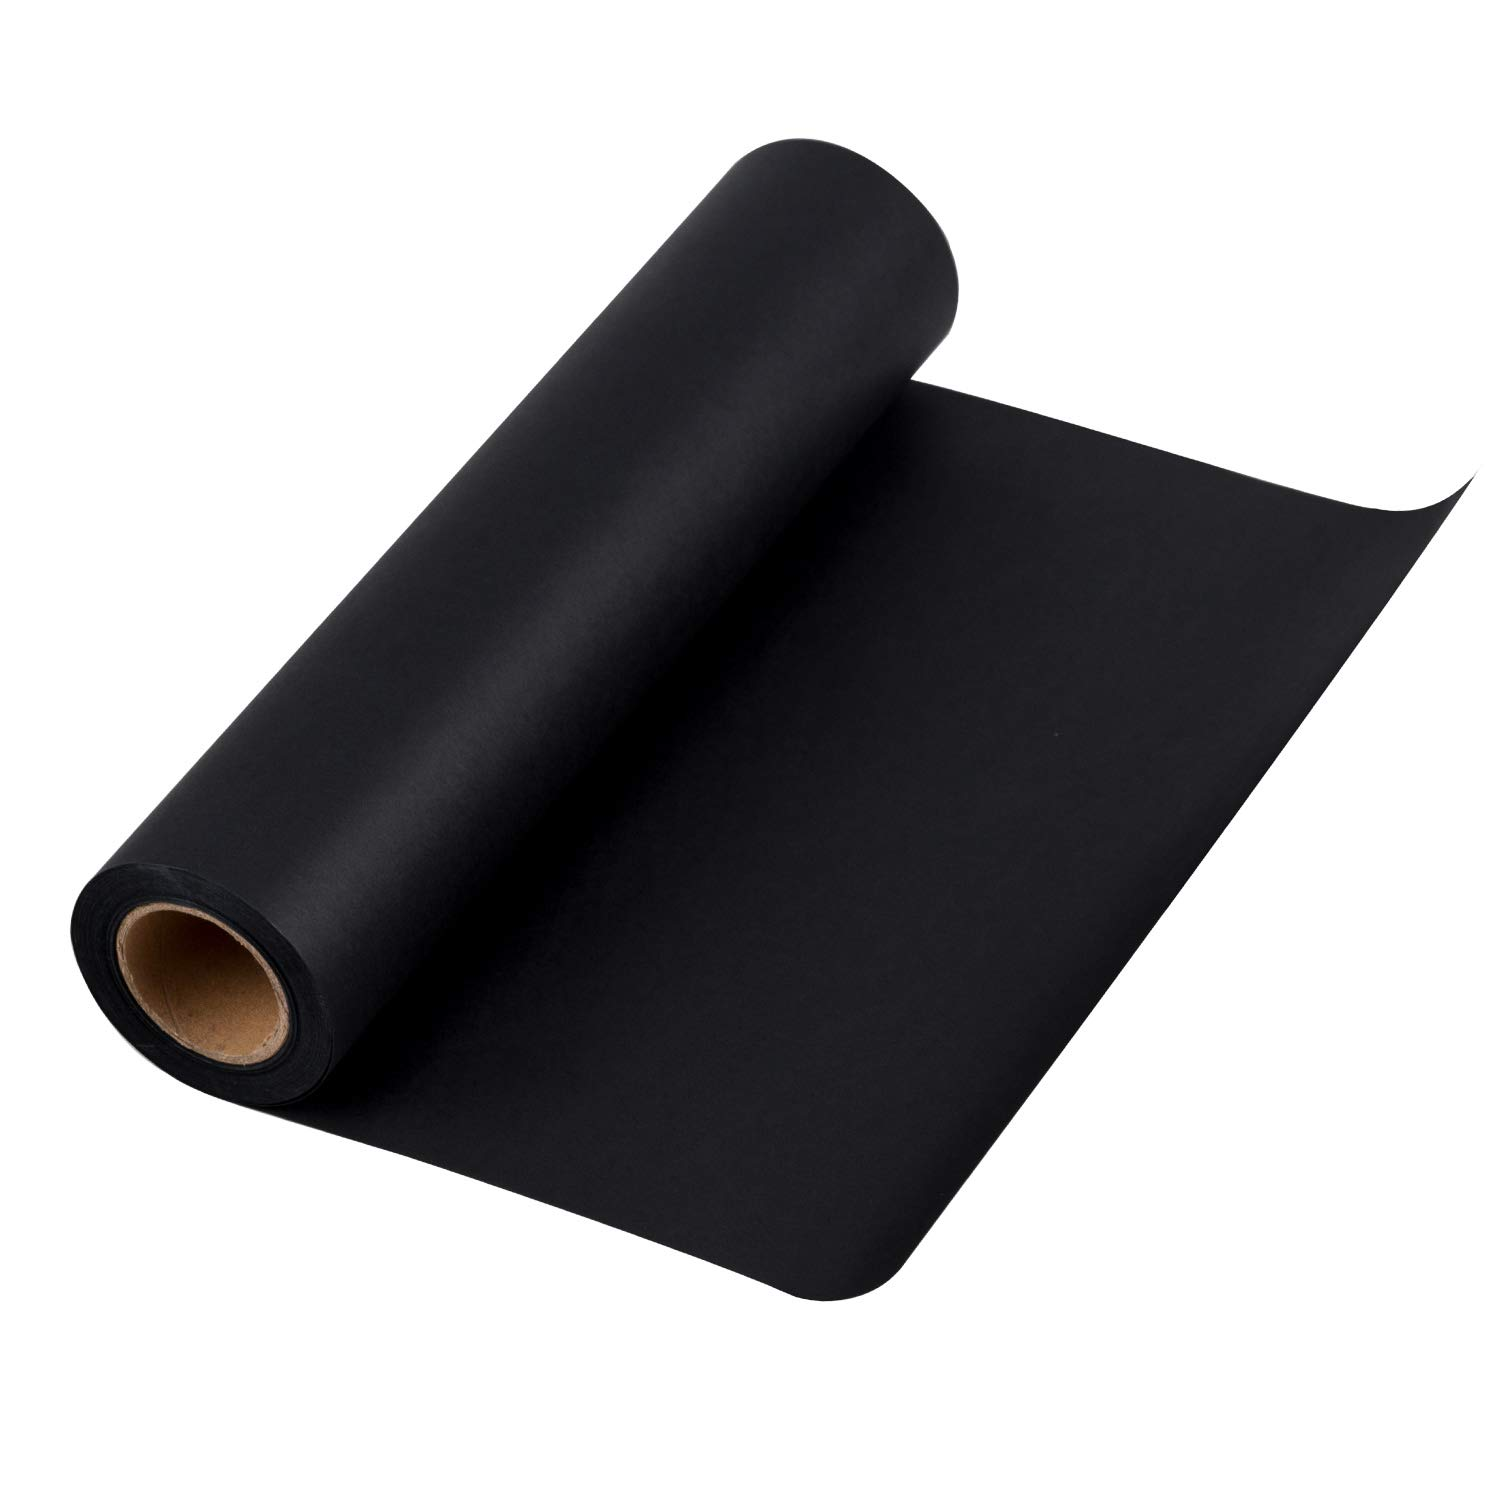 RUSPEPA Black Kraft Paper Roll - 12 inch x 100 Feet - Recycled Paper Perfect for for Crafts, Art,Small Gift Wrapping, Packing, Postal, Shipping, Dunnage & Parcel by RUSPEPA